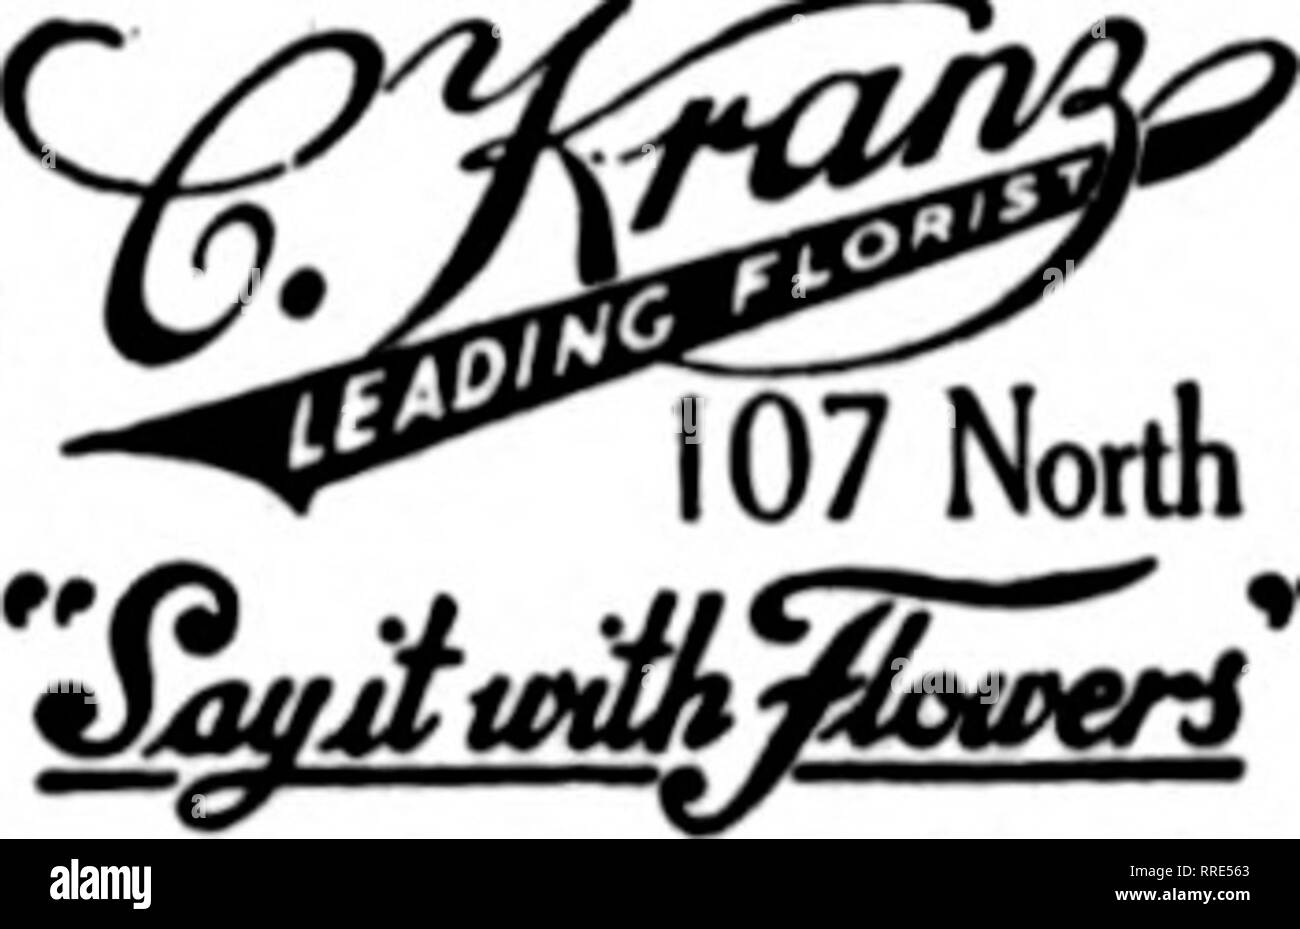 """. Florists' review [microform]. Floriculture. Kirkwood Floral Co. DES MOINES, lA. F. T. D. IOWA and VICINITY Your orders will receive Mr. Ray Holt's personal attention STORE AND GREENHOUSES DAVENPORT, IOWA """"Say It with Flowers"""" BILLS FLORAL CO. M. A. TIERNEY. Owner Member P. T. D, TAMA, IOWA UNCOLN GARDENS. Inc. G>mpetent service to all central Iowa, three railroads, two double-track trunk lines. OTTUMWA, IOWA PHONE 182 i/». 107 North Market Street OTTUMWA, IOWA criley's greenhouses Council Bluffs, Iowa GARDINER FLORAL CO. Leading Retail Florist 645 W. BROADWAY We strive to please Stock Photo"""